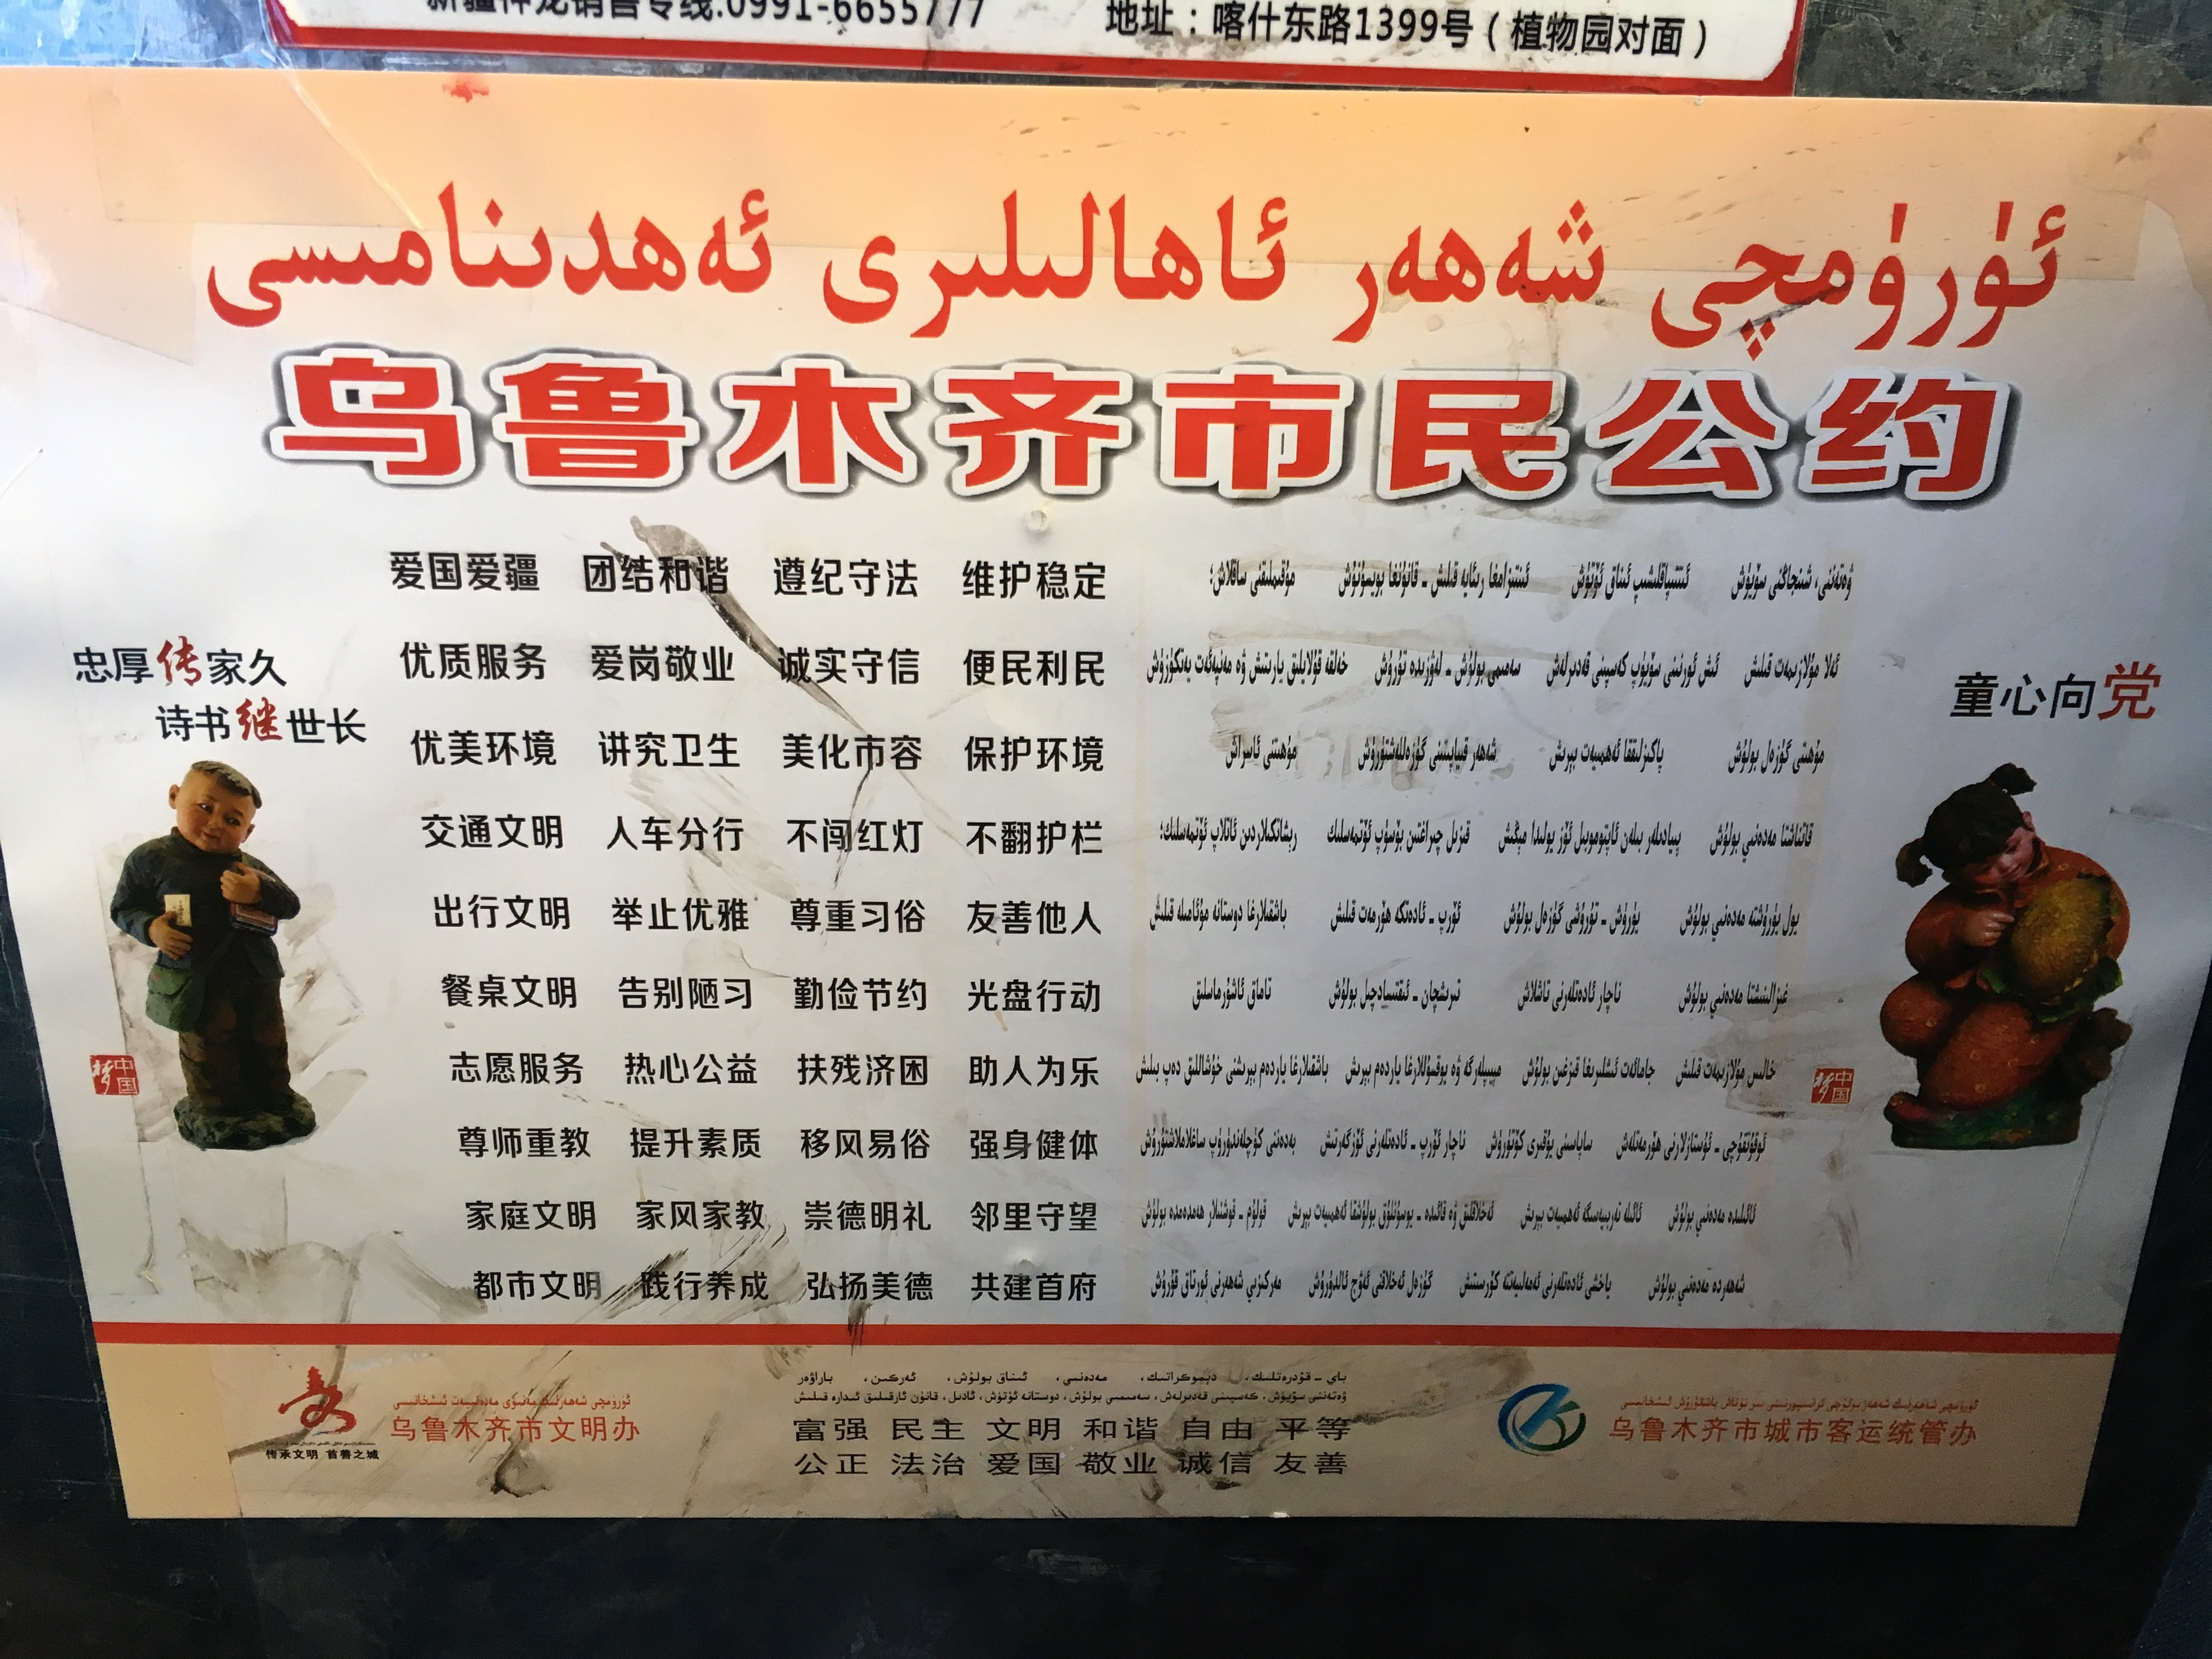 Translation: Propaganda in Urumqi Amid Crackdown